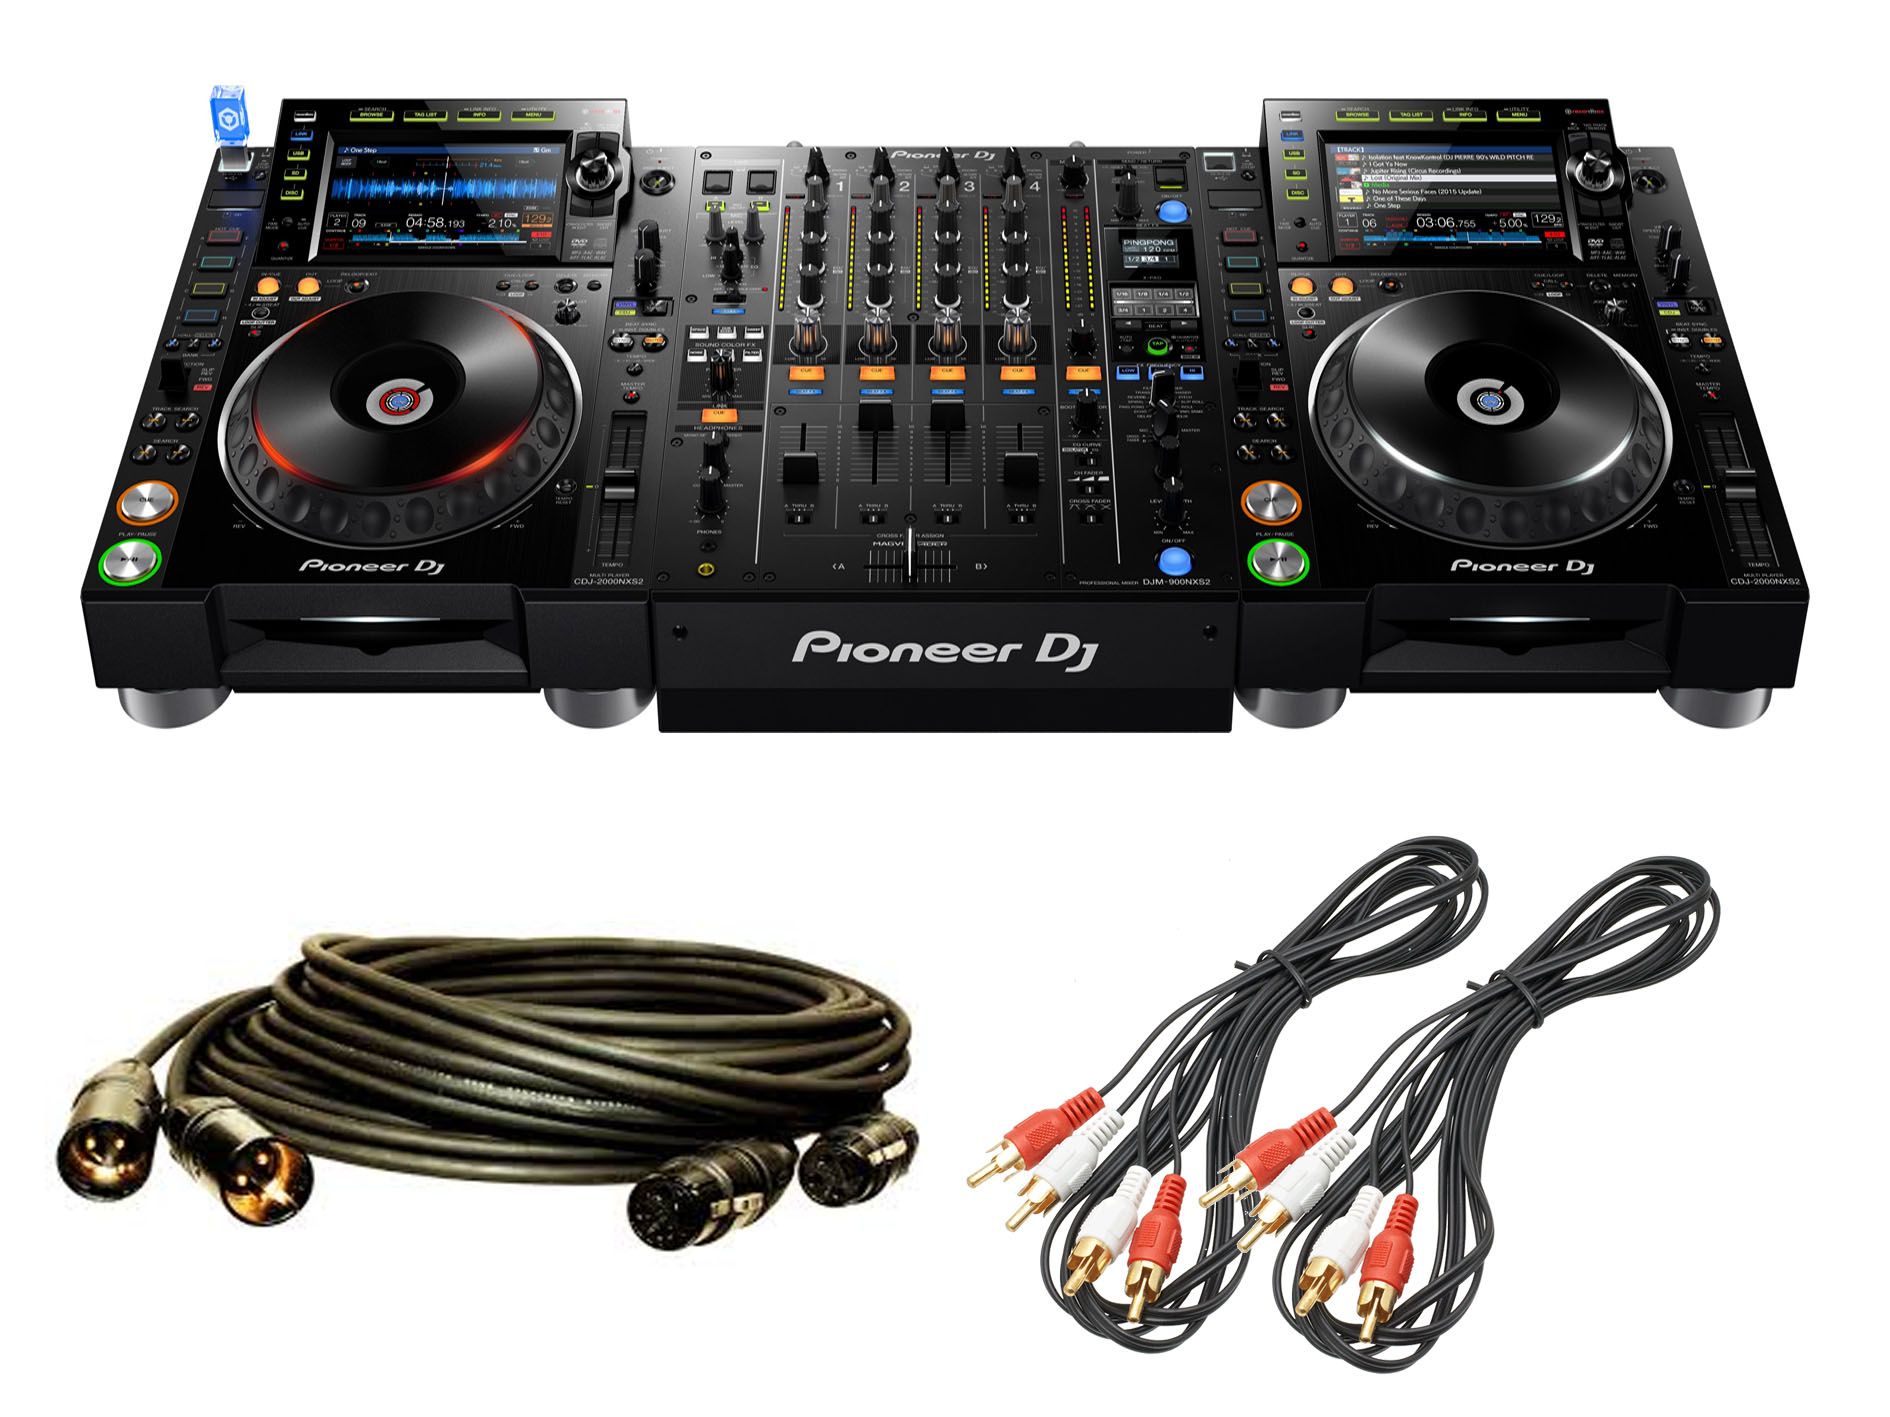 cdjs nexus and DJM 900 NXS2 mixer